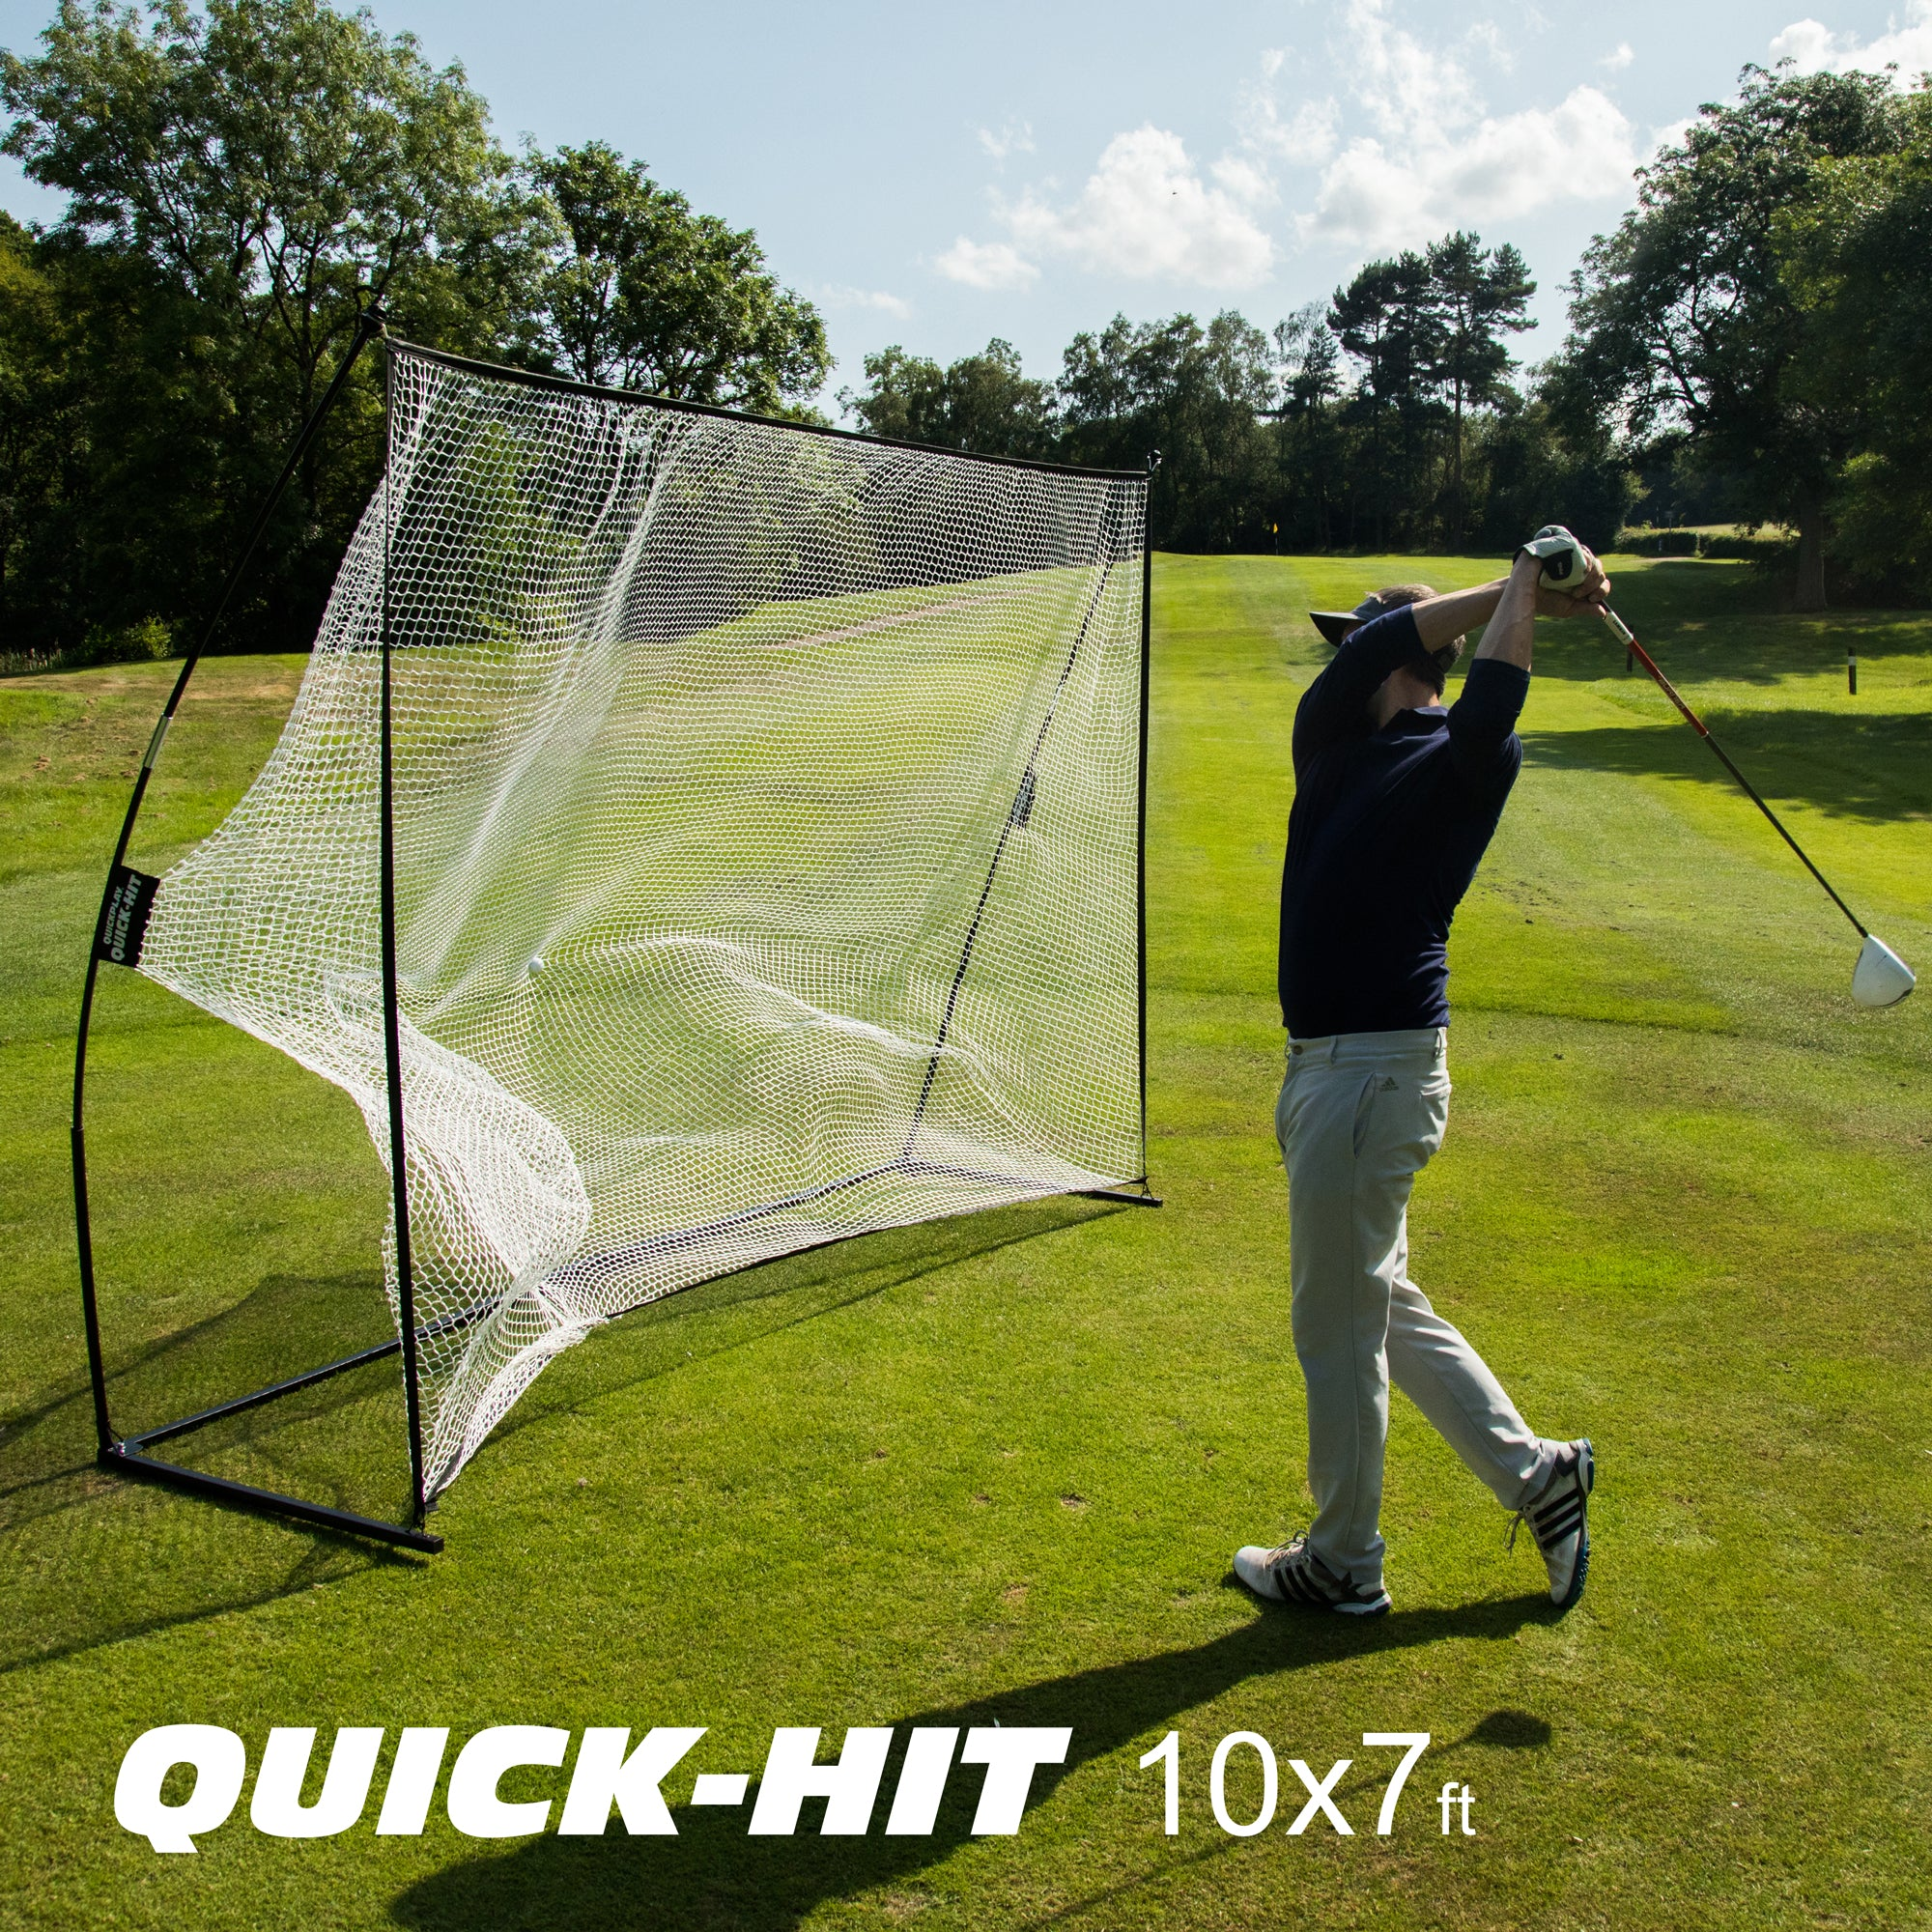 Quick Hit 10 x 7 hitting net